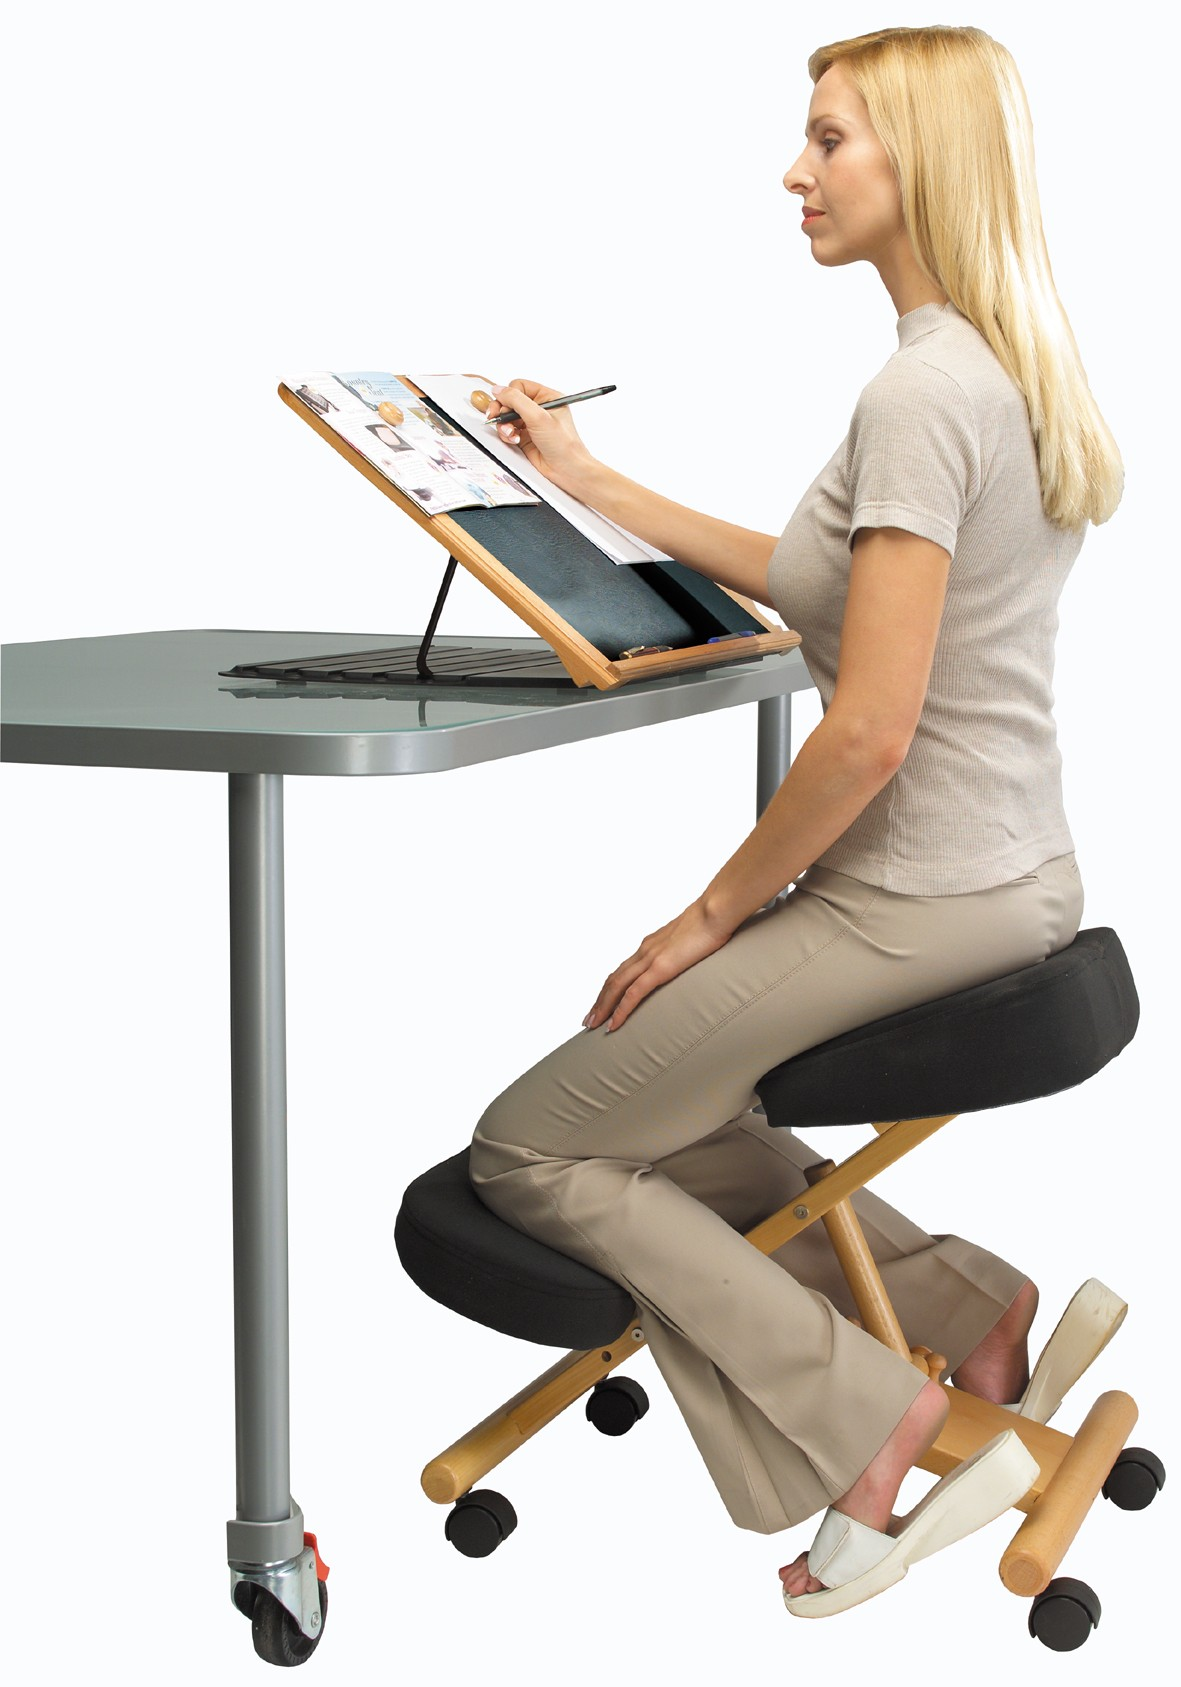 bad posture in chair revolving base online putnams kneeling for office and home new ebay